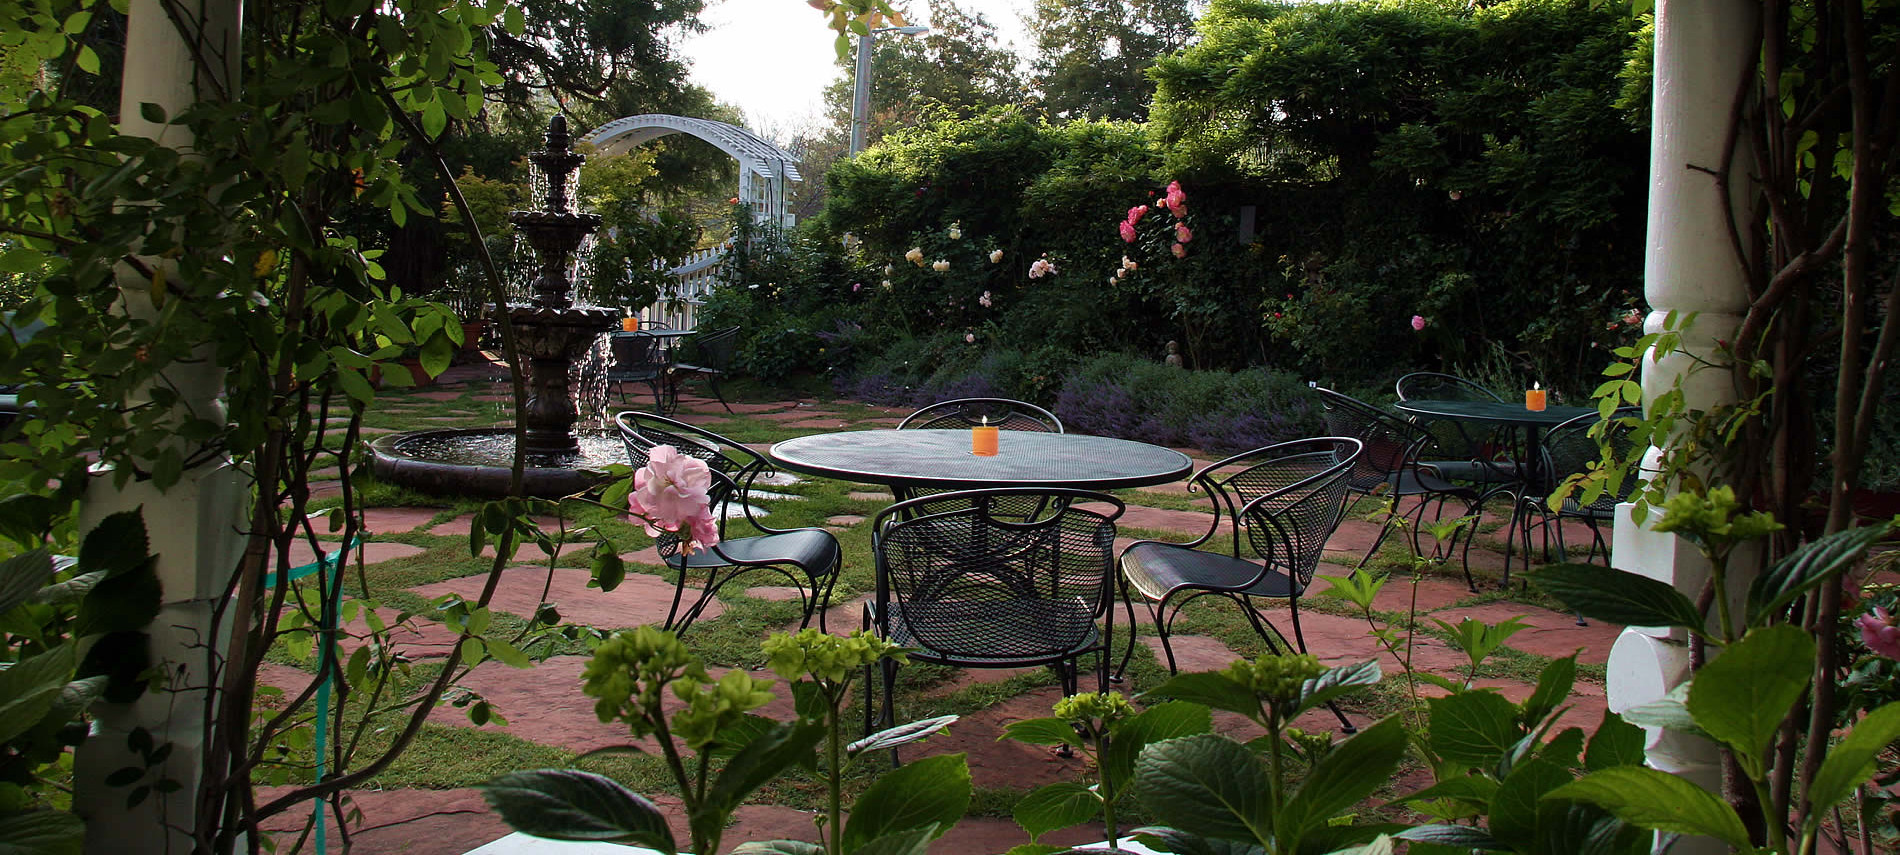 sonoma county lodging deals